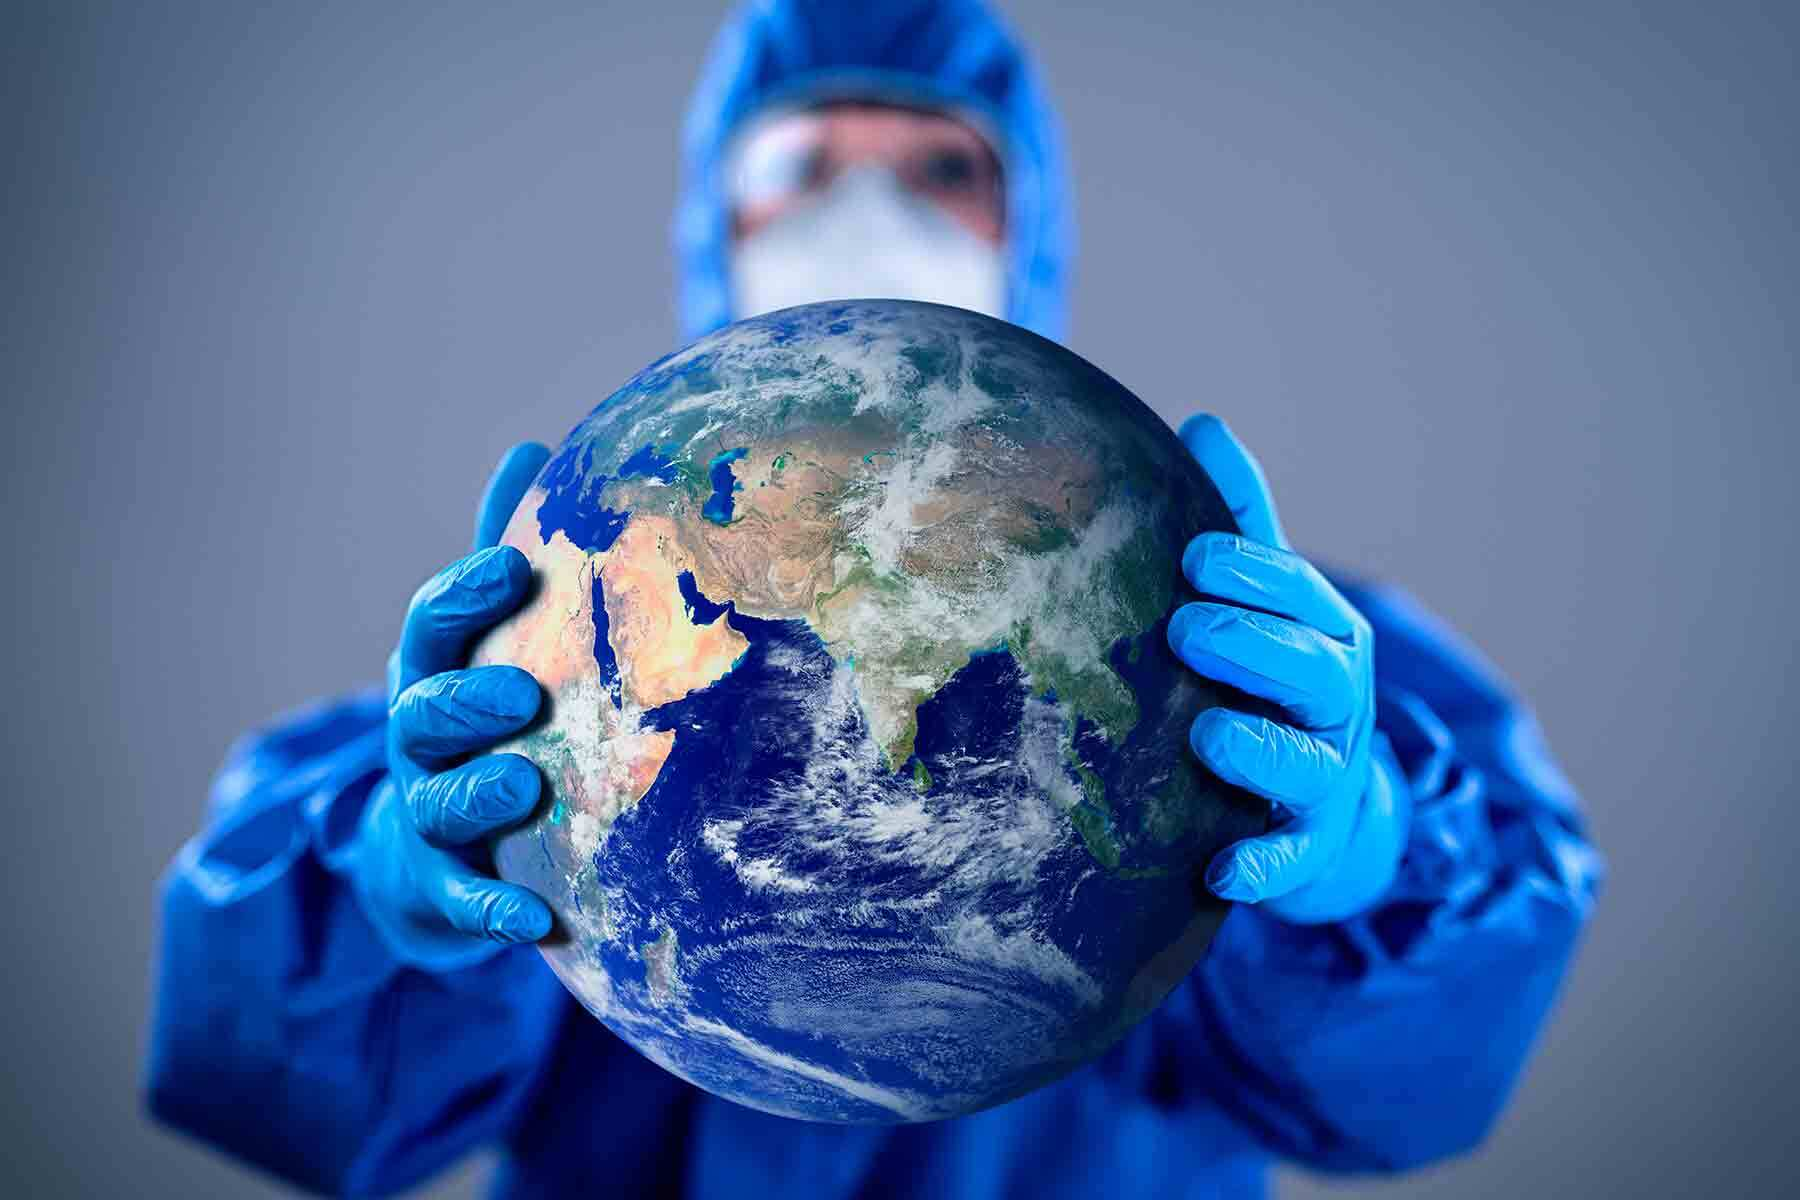 a person wearing blue hazmat outfit, blue gloves and a mask is holding a globe earth.